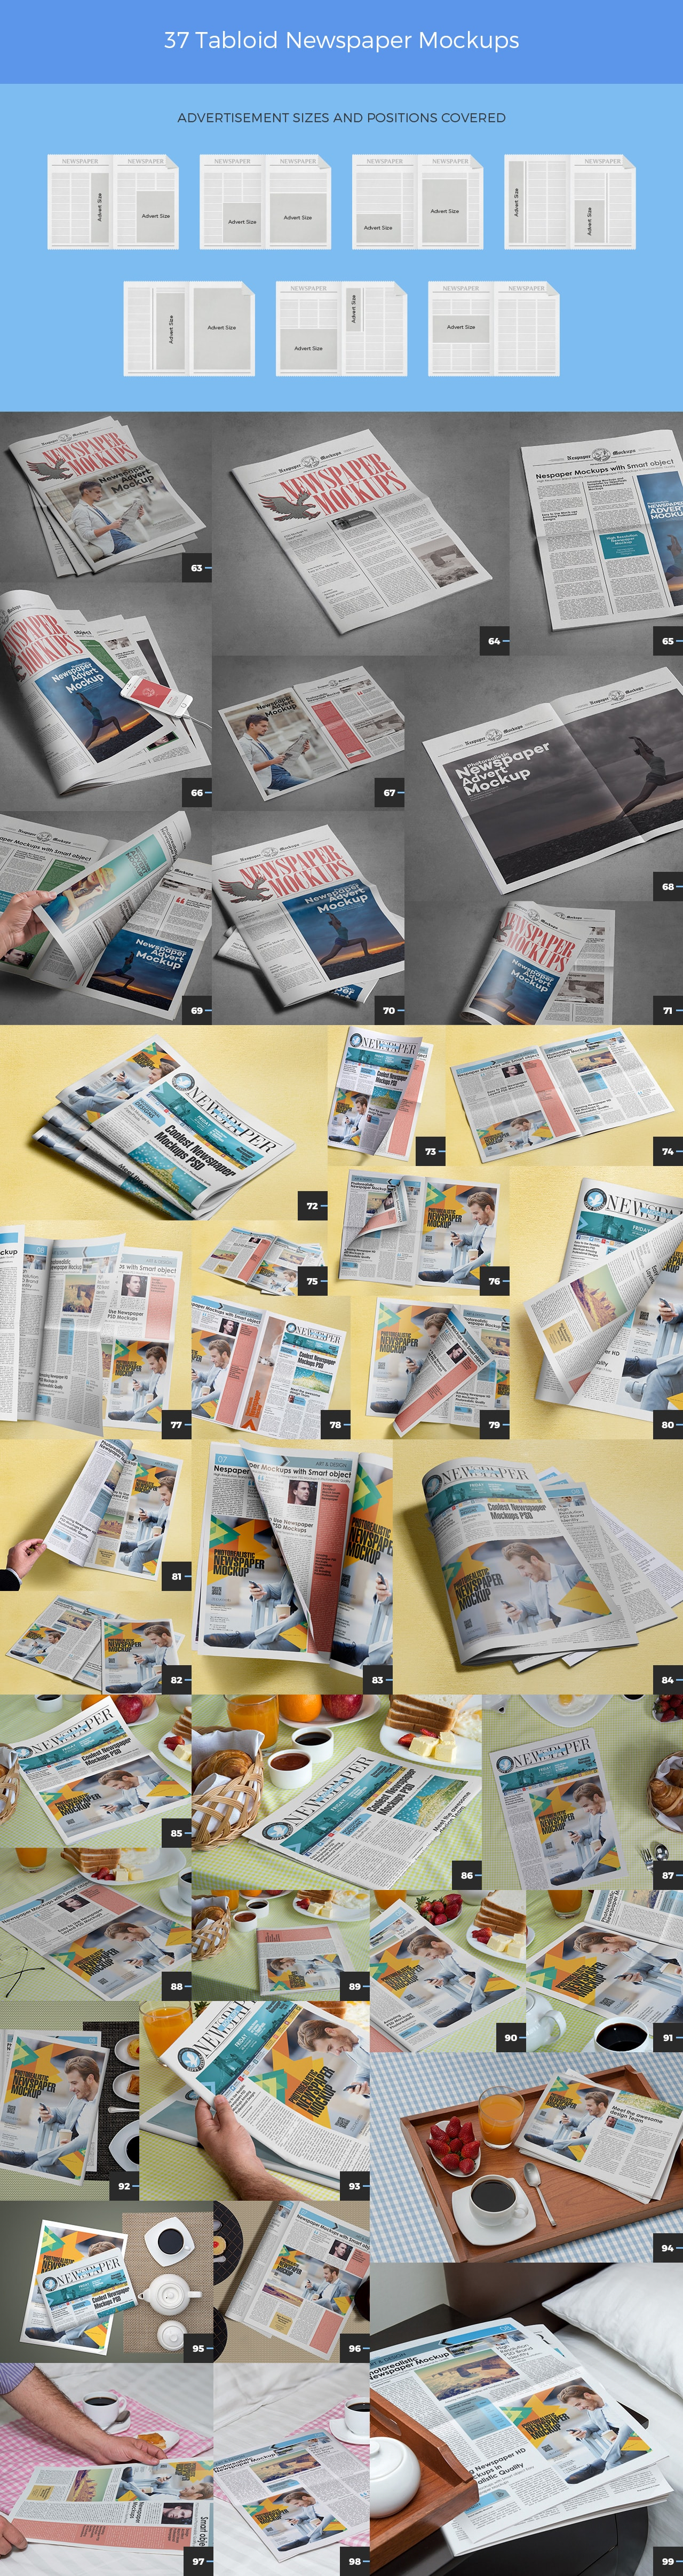 03-tabloid-newspaper-advert-mockups-bundle